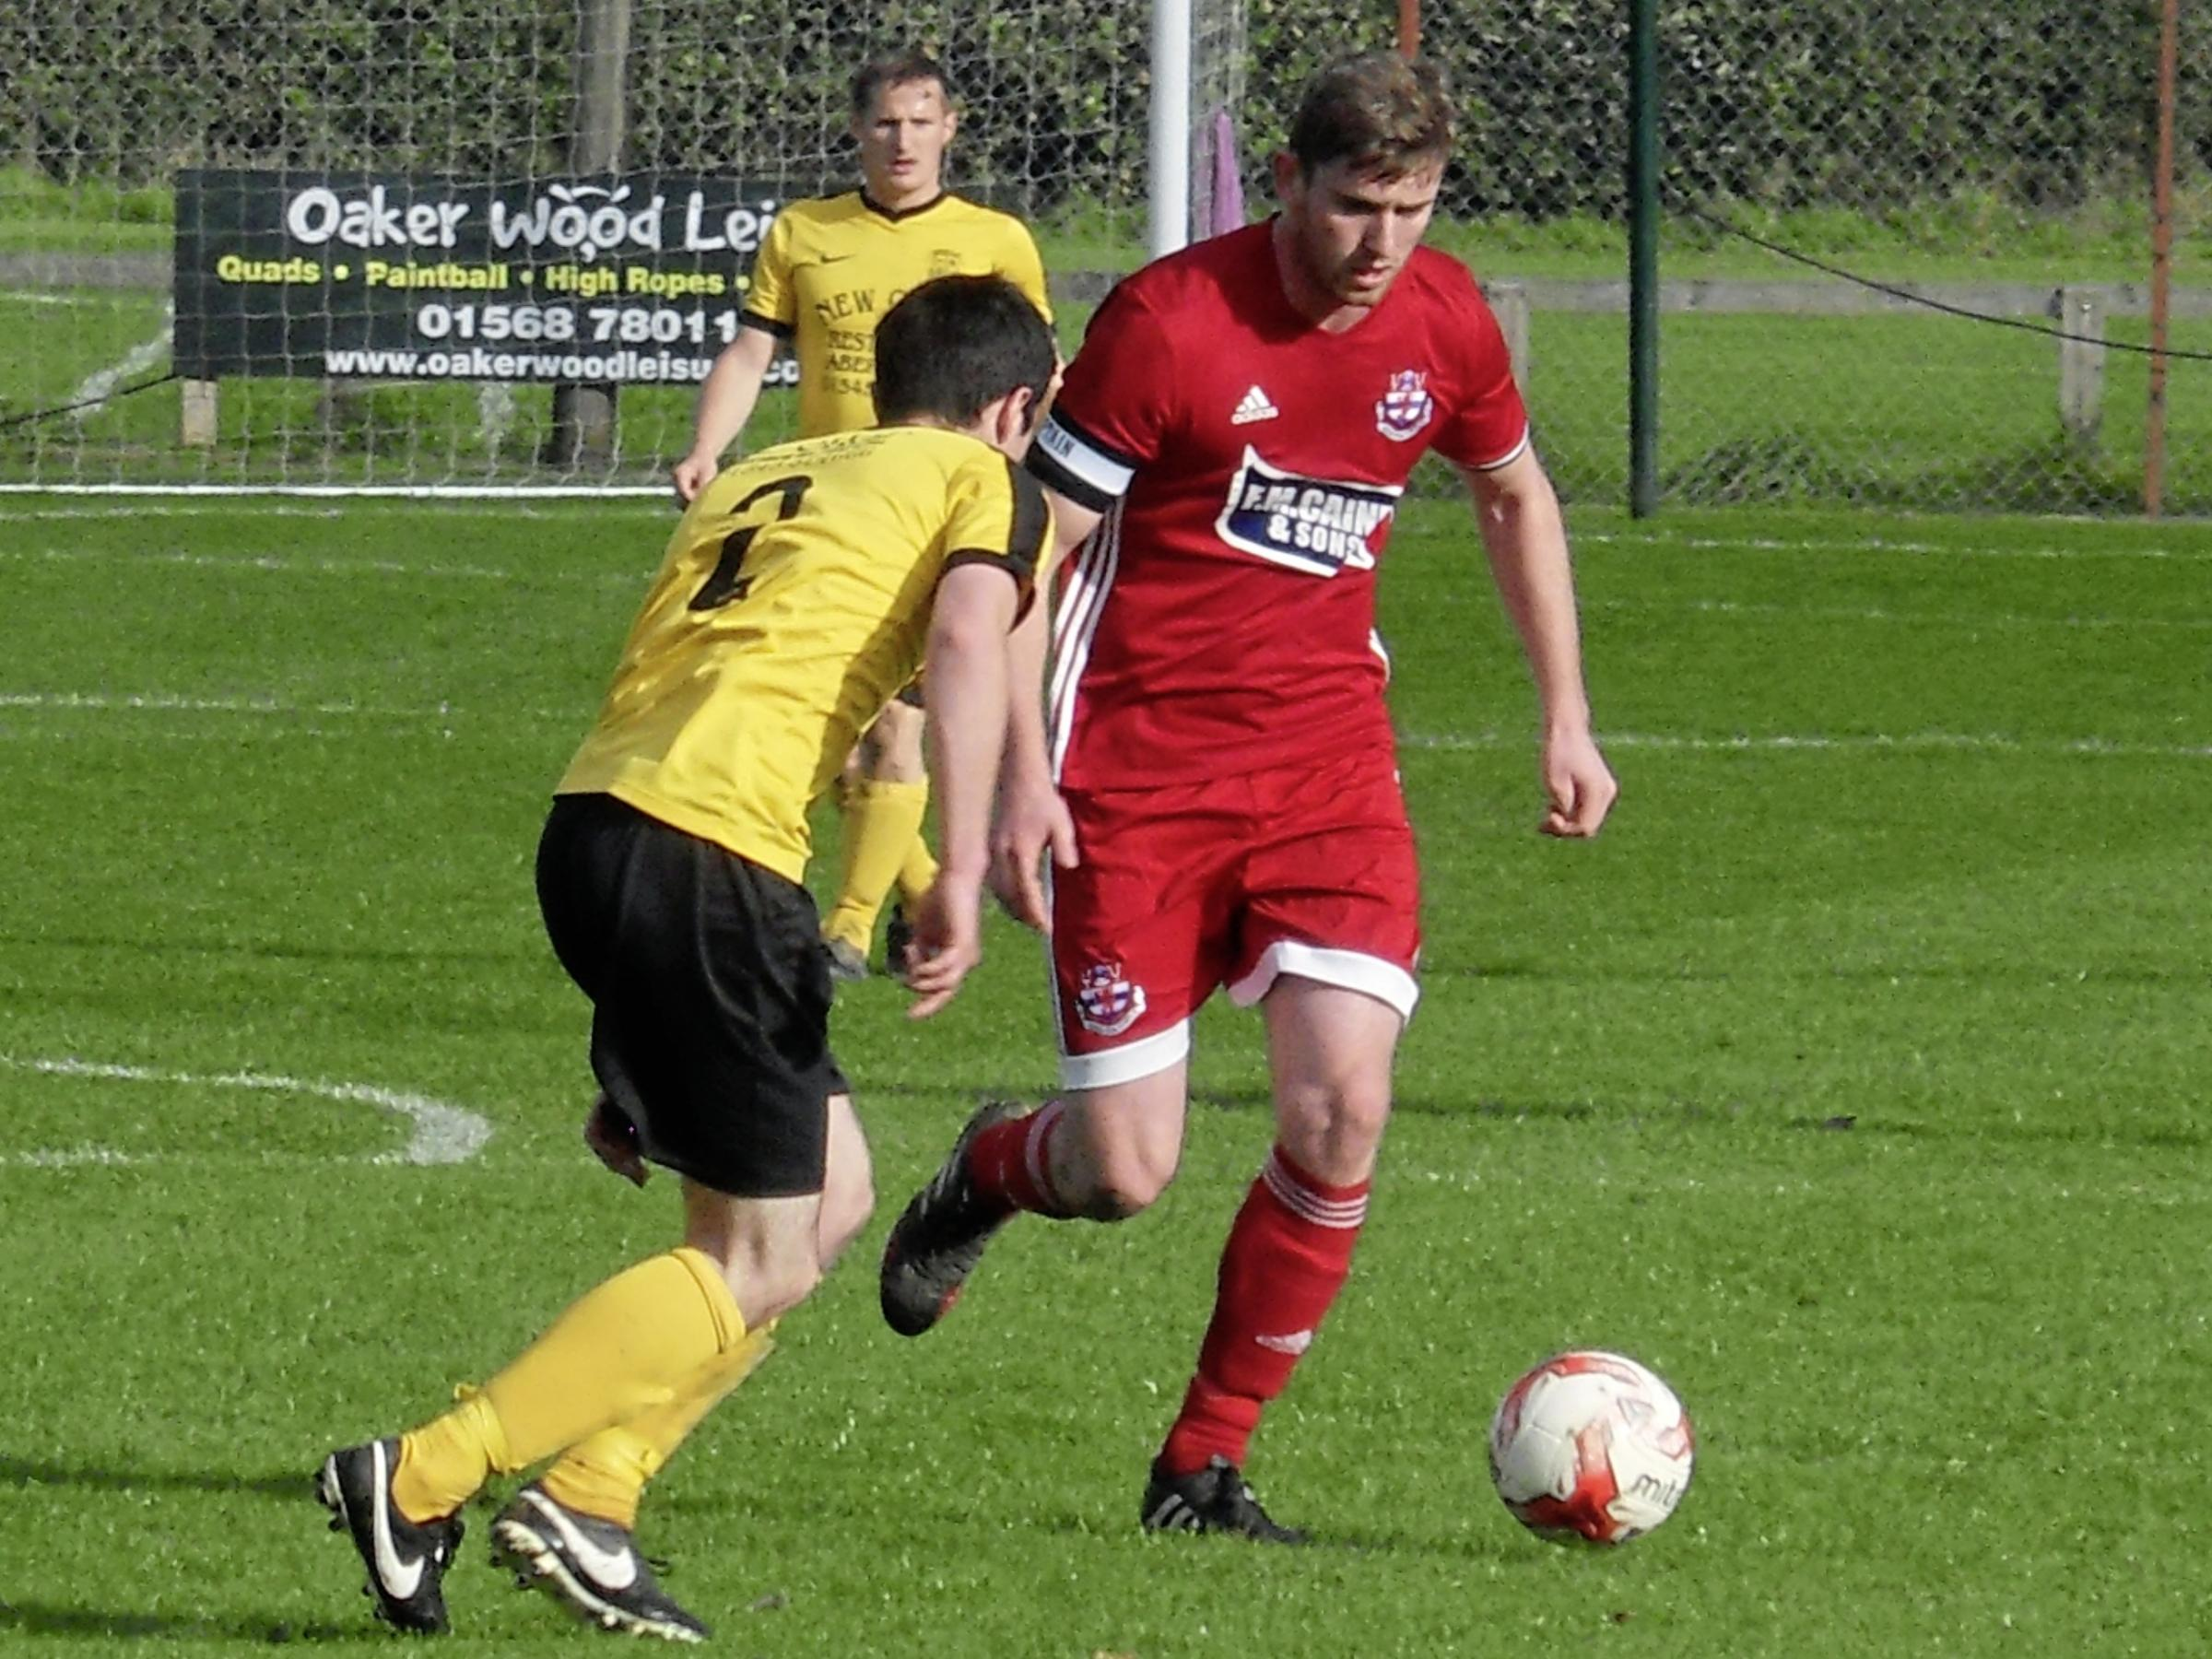 Knighton Town's Adam Farmer broke his tibia at Llanfair on Saturday.